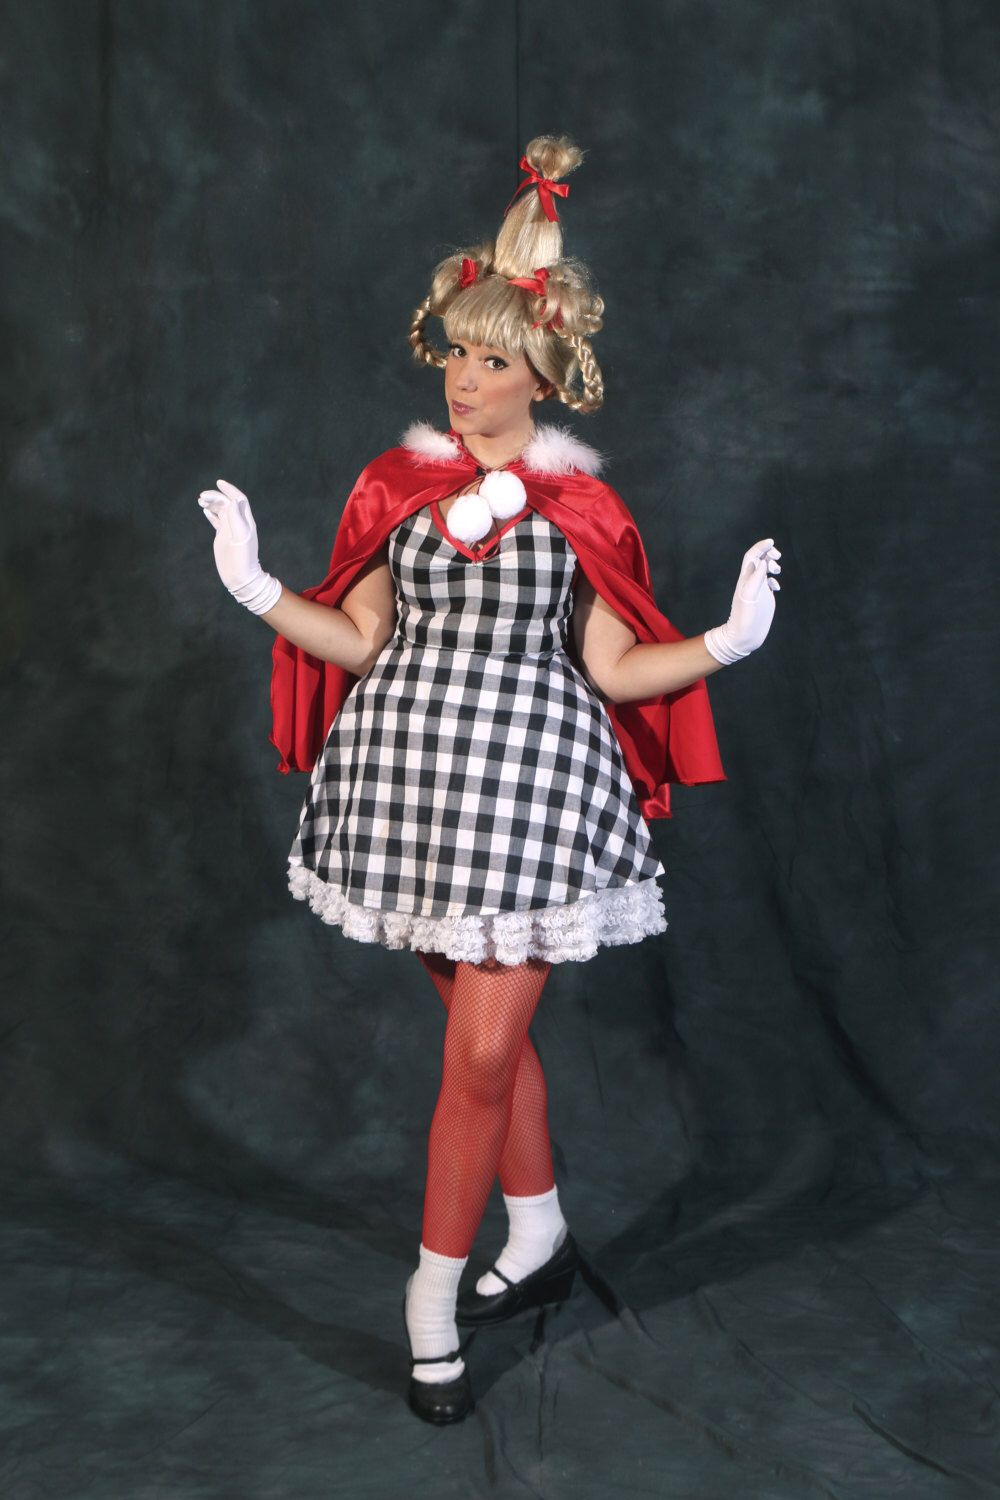 Handmade Adult Cindy Lou Who Costume How The Grinch Stole Christmas Halloween Theatre by designsashkat3 on Etsy ...  sc 1 st  Pinterest & Handmade Adult Cindy Lou Who Costume How The Grinch Stole Christmas ...